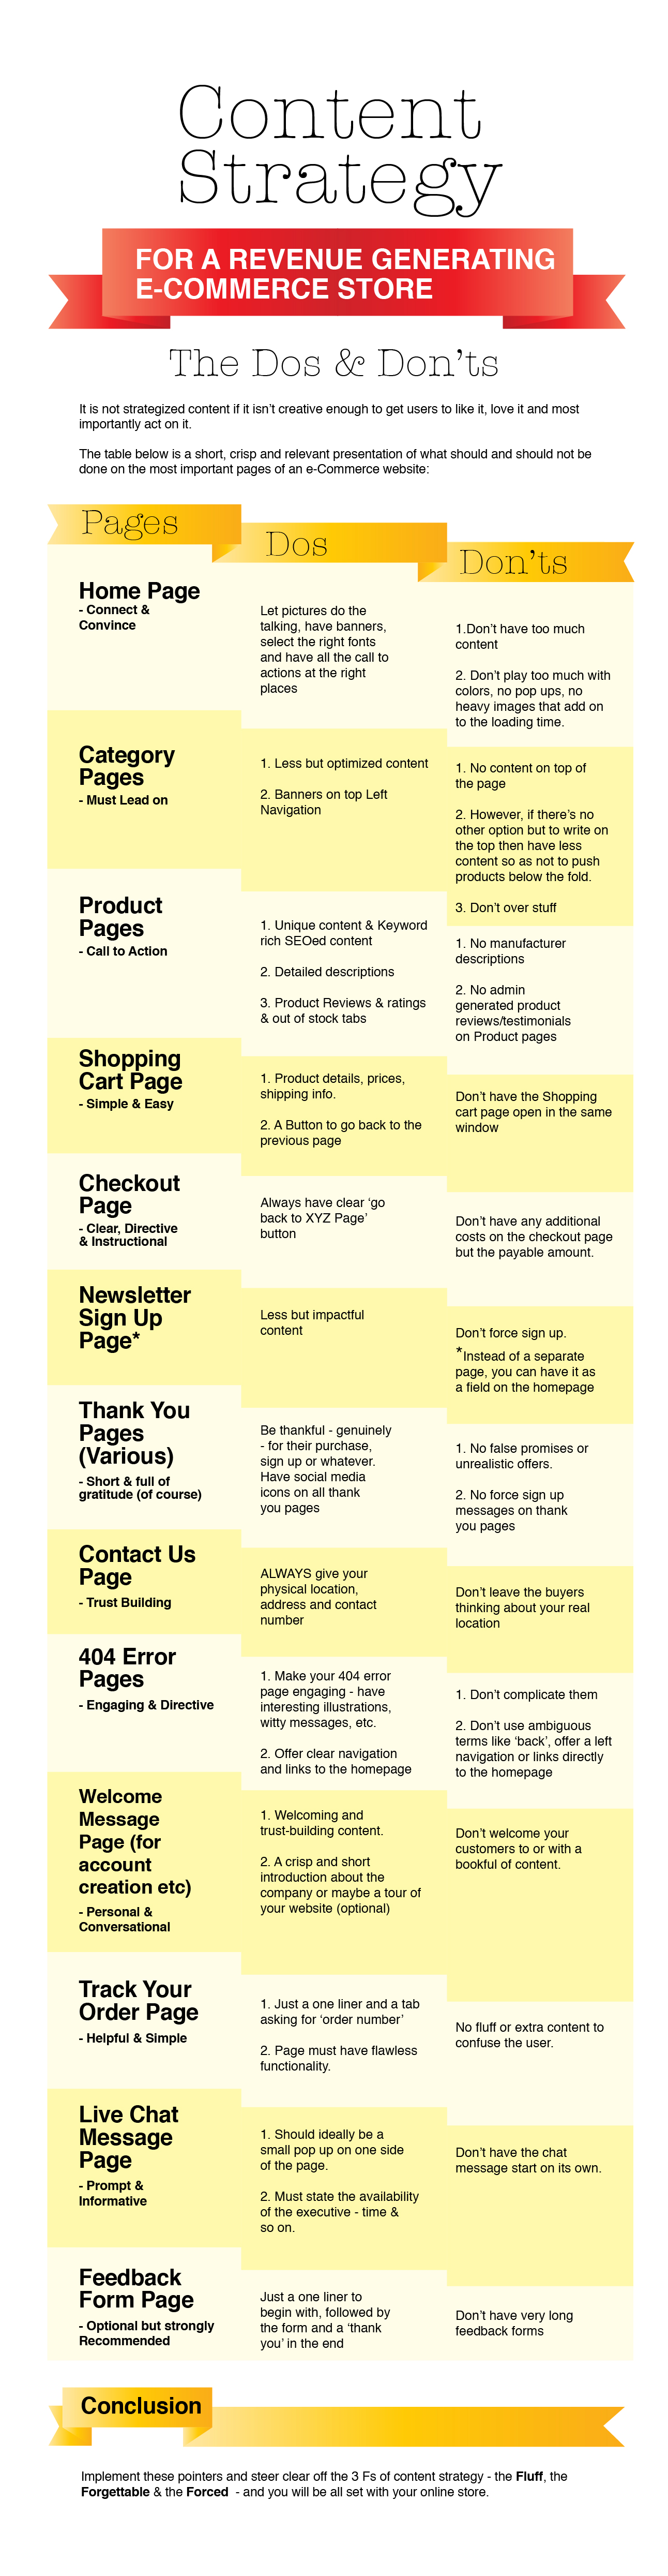 Content Strategy - Dos & Don'ts